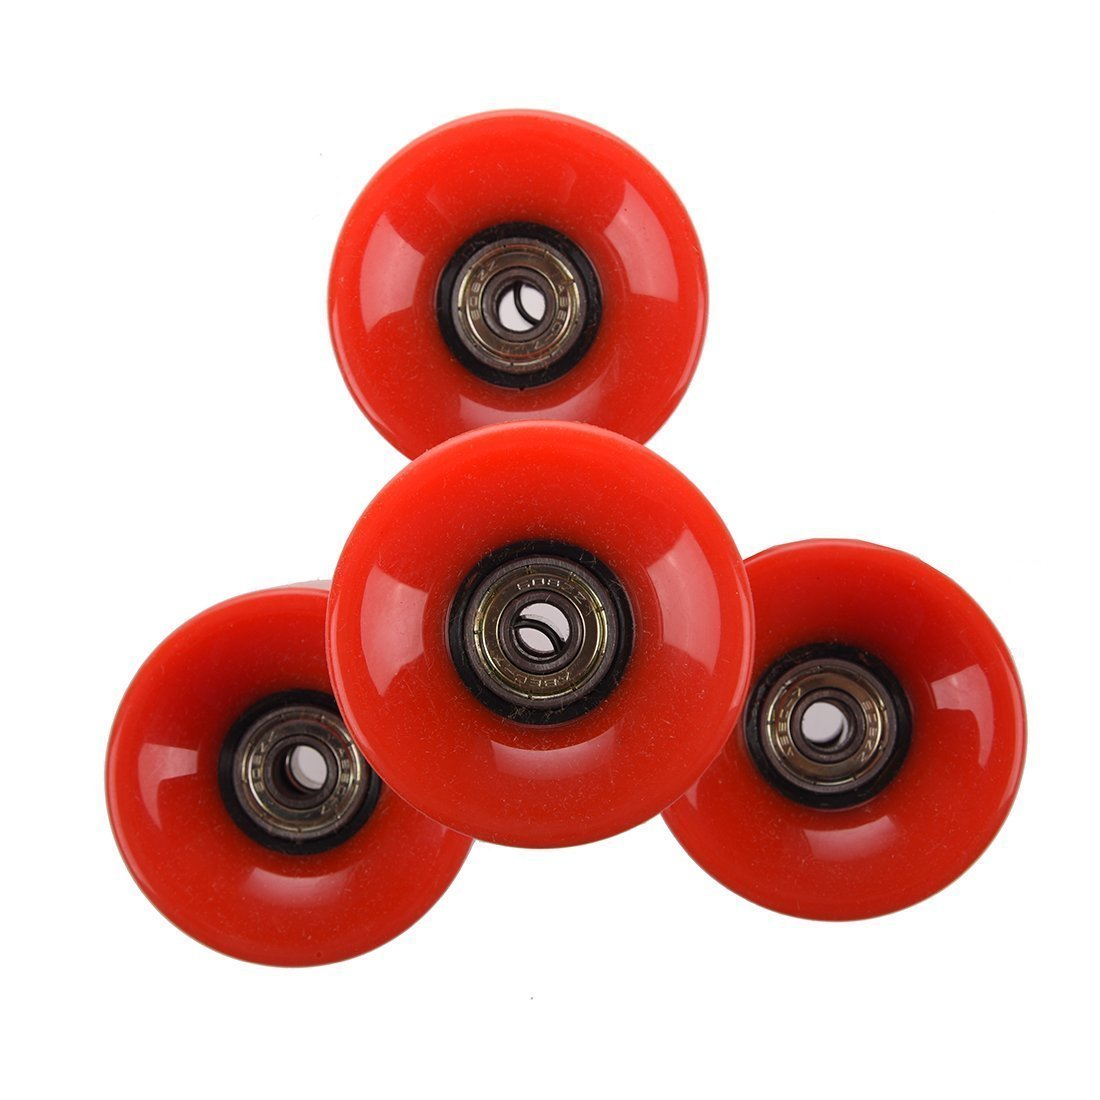 BARGAIN HOUSE Skateboard wheel, four set skateboard wheels Suitable for 6 cm diameter and 4.5 cm wide pennies Red by BARGAIN HOUSE